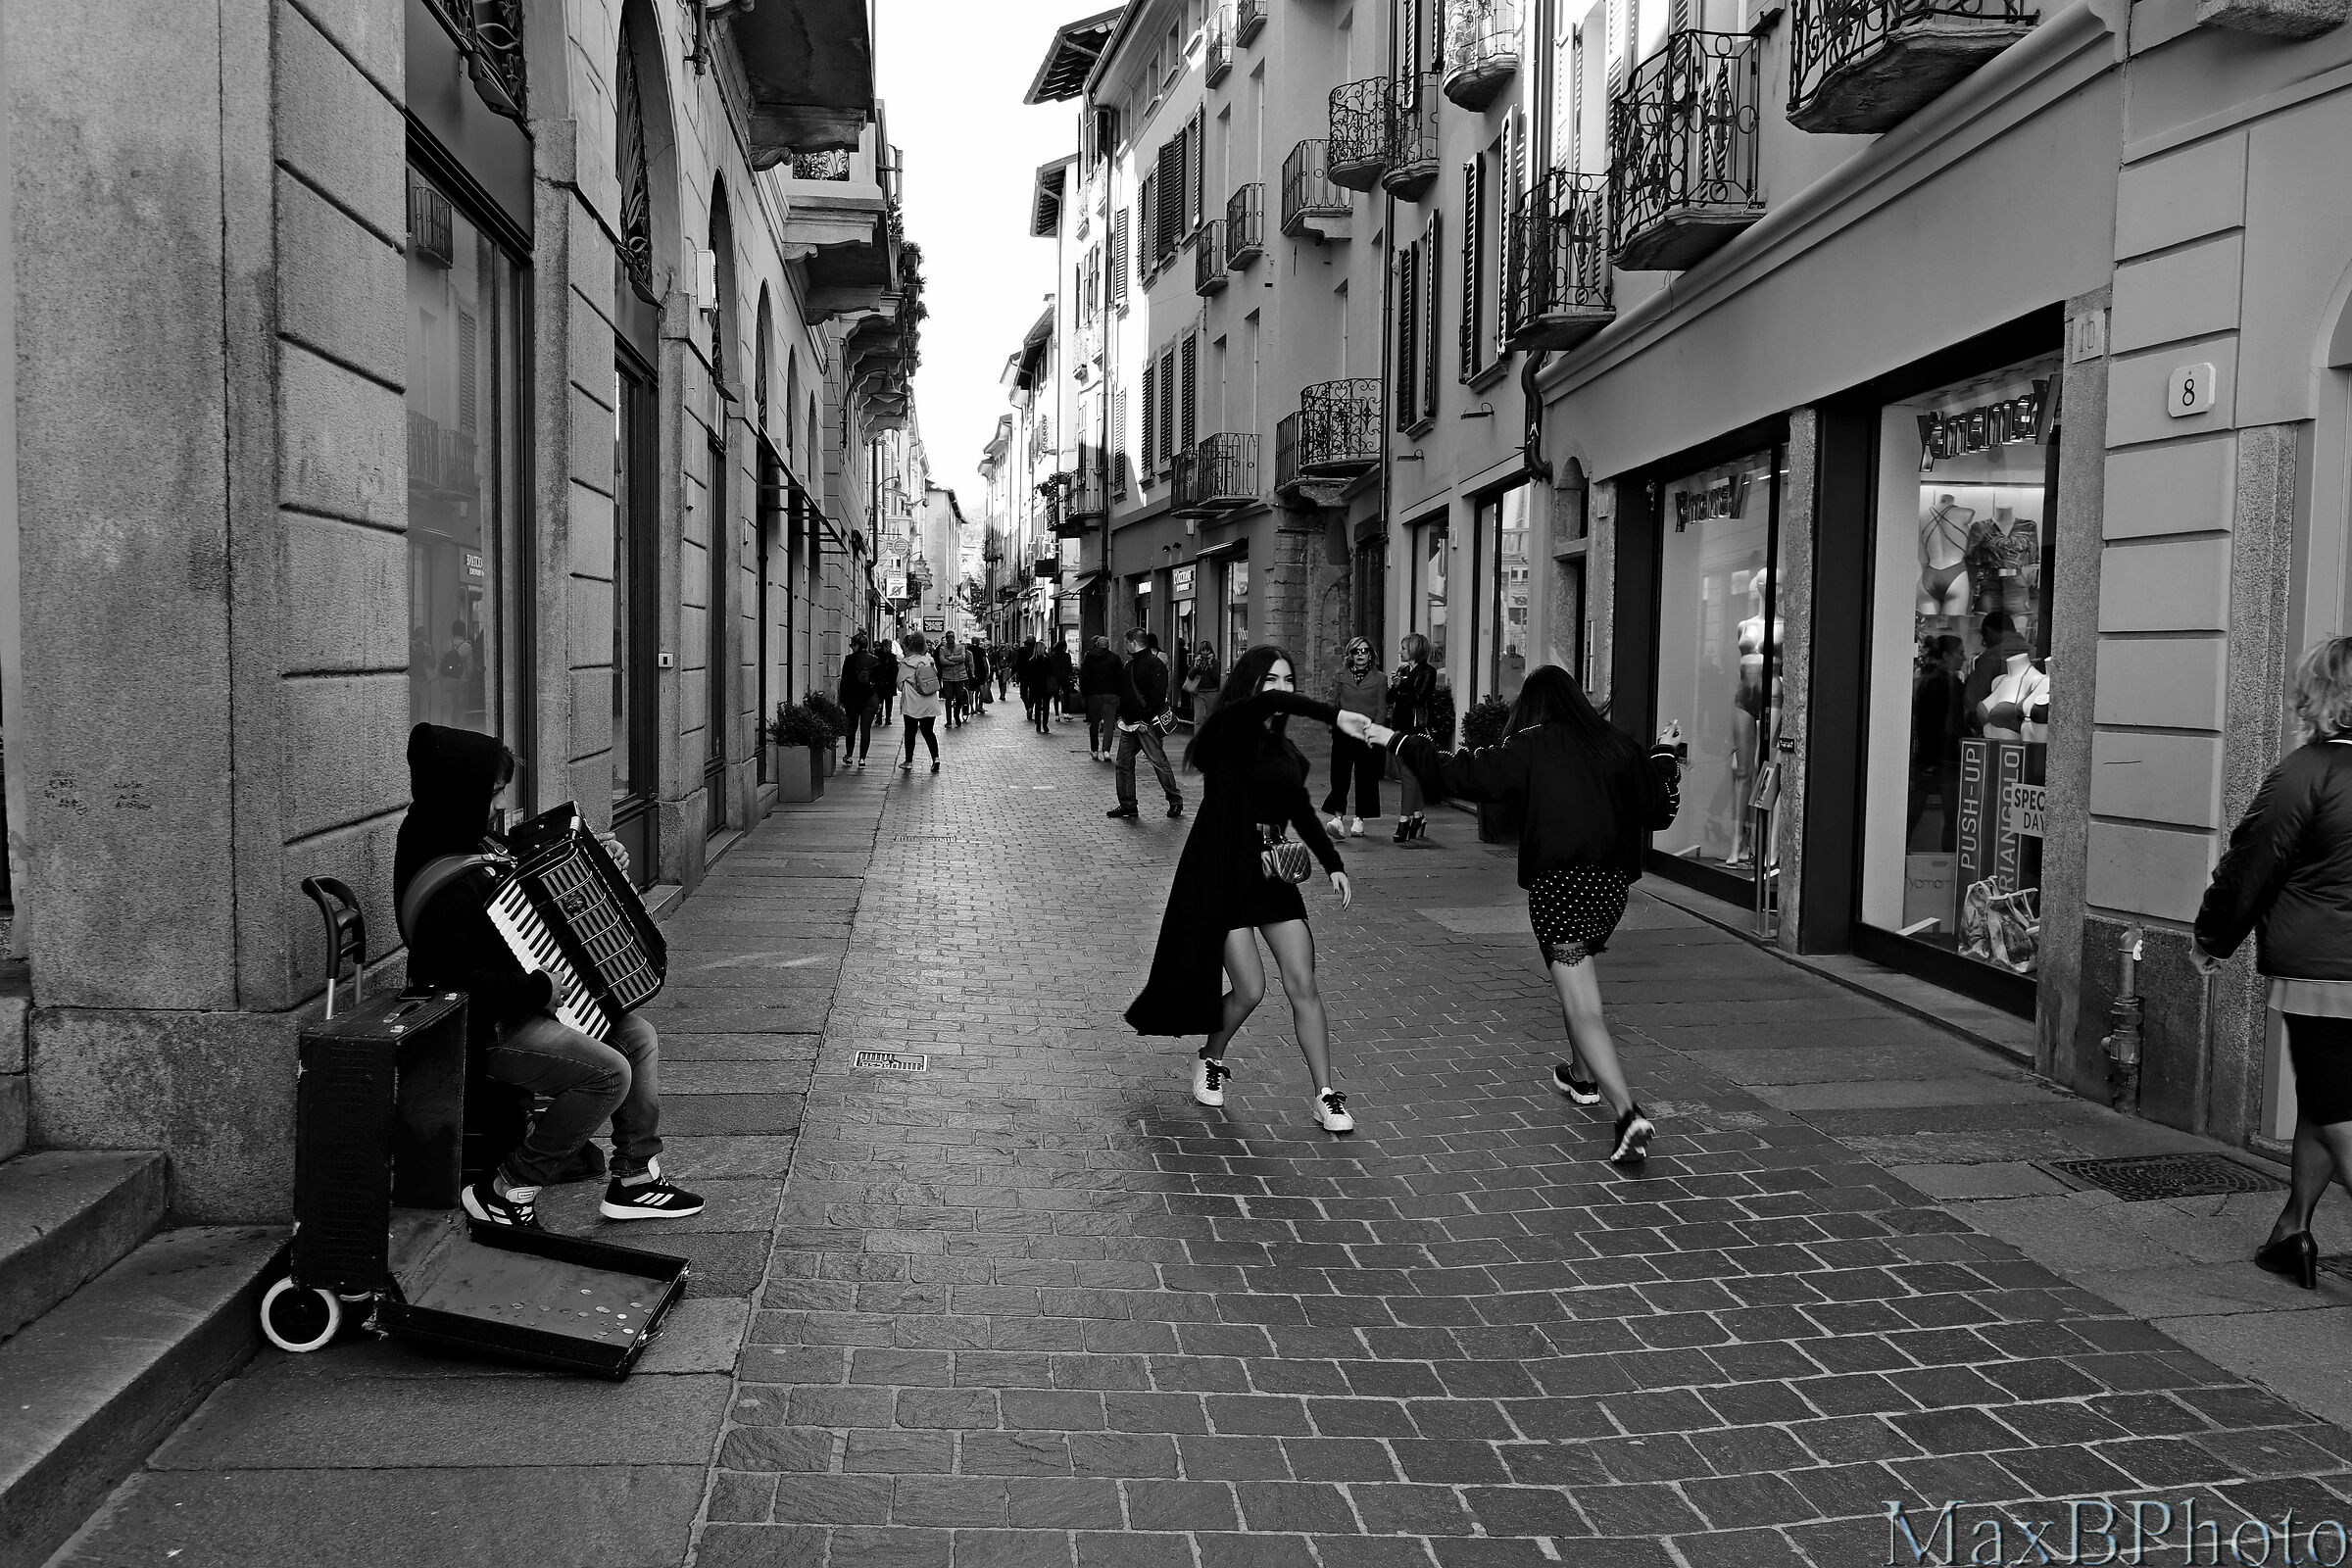 Dancing on the street...